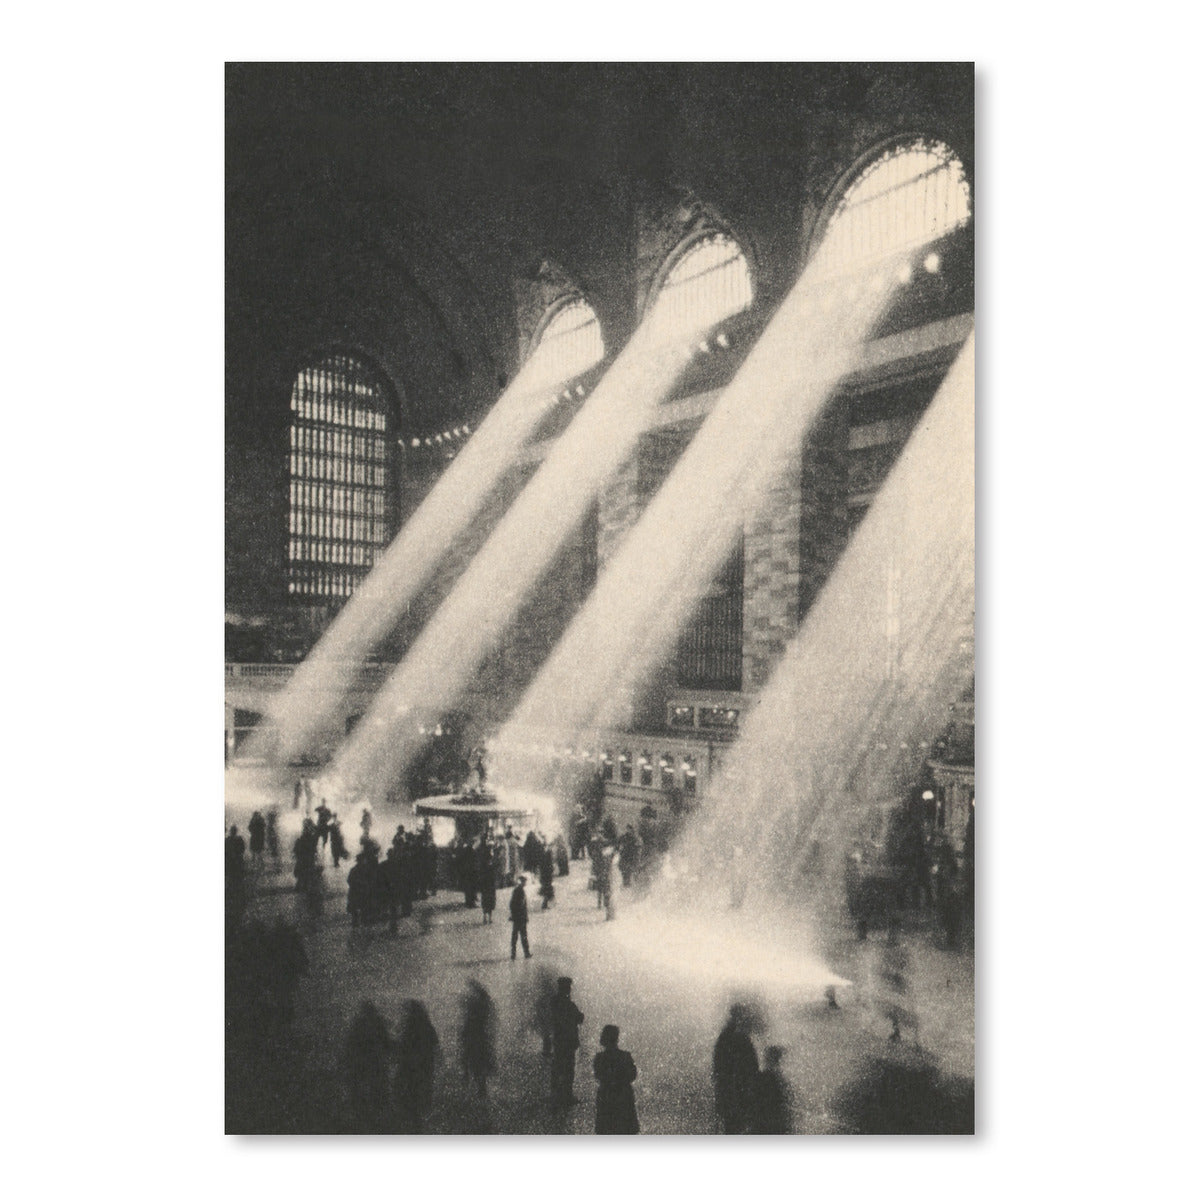 Light In Grand Central Station by Found Image Press Art Print - Art Print - Americanflat